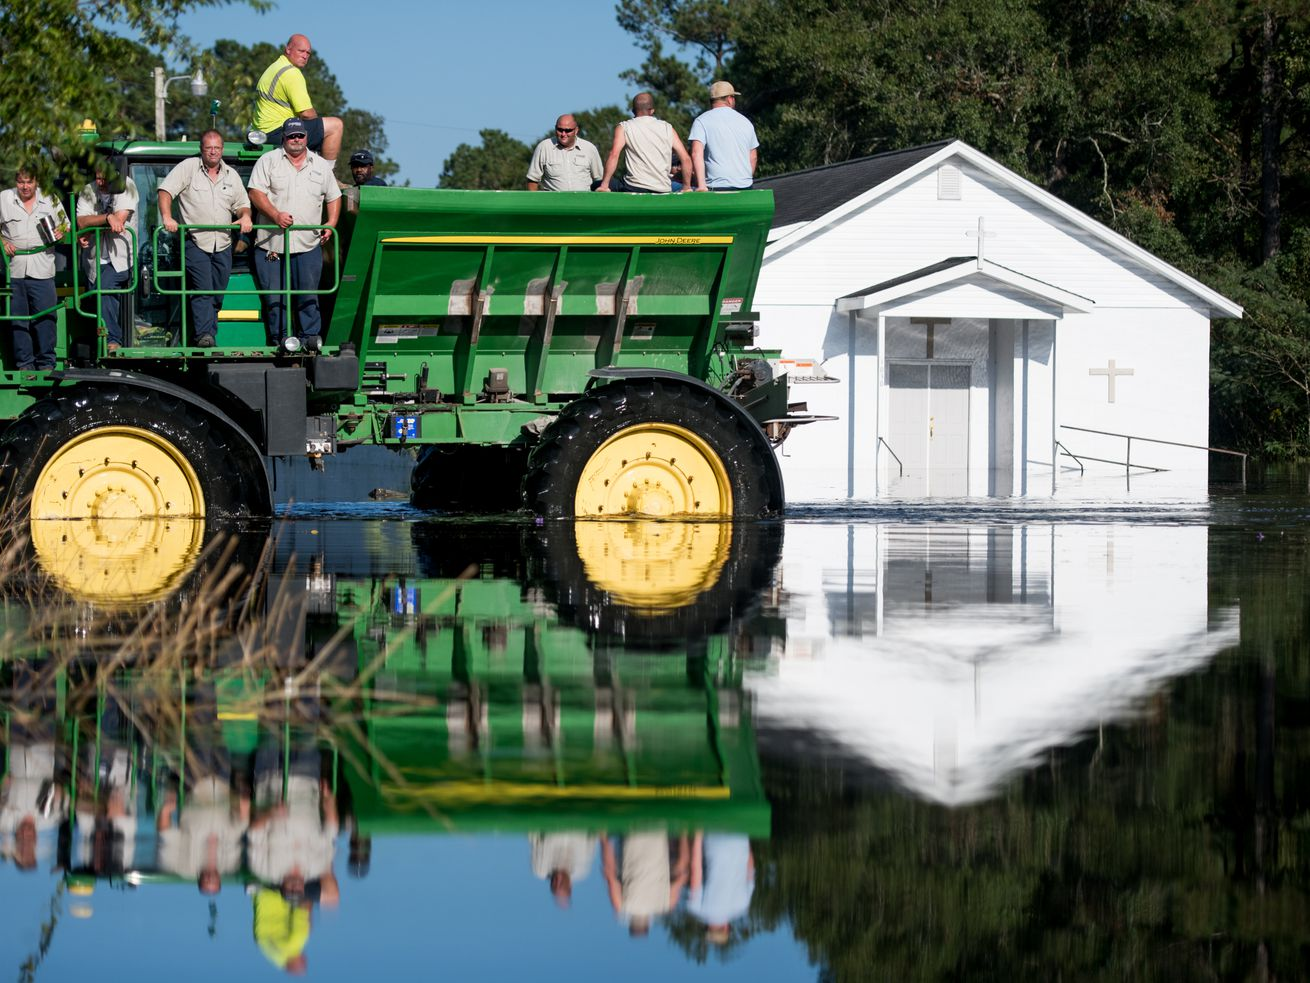 Workers use farm machinery to navigate floodwaters from the Waccamaw River caused by Hurricane Florence in Bucksport, South Carolina. Sea-level rise exacerbated flooding from the storm.